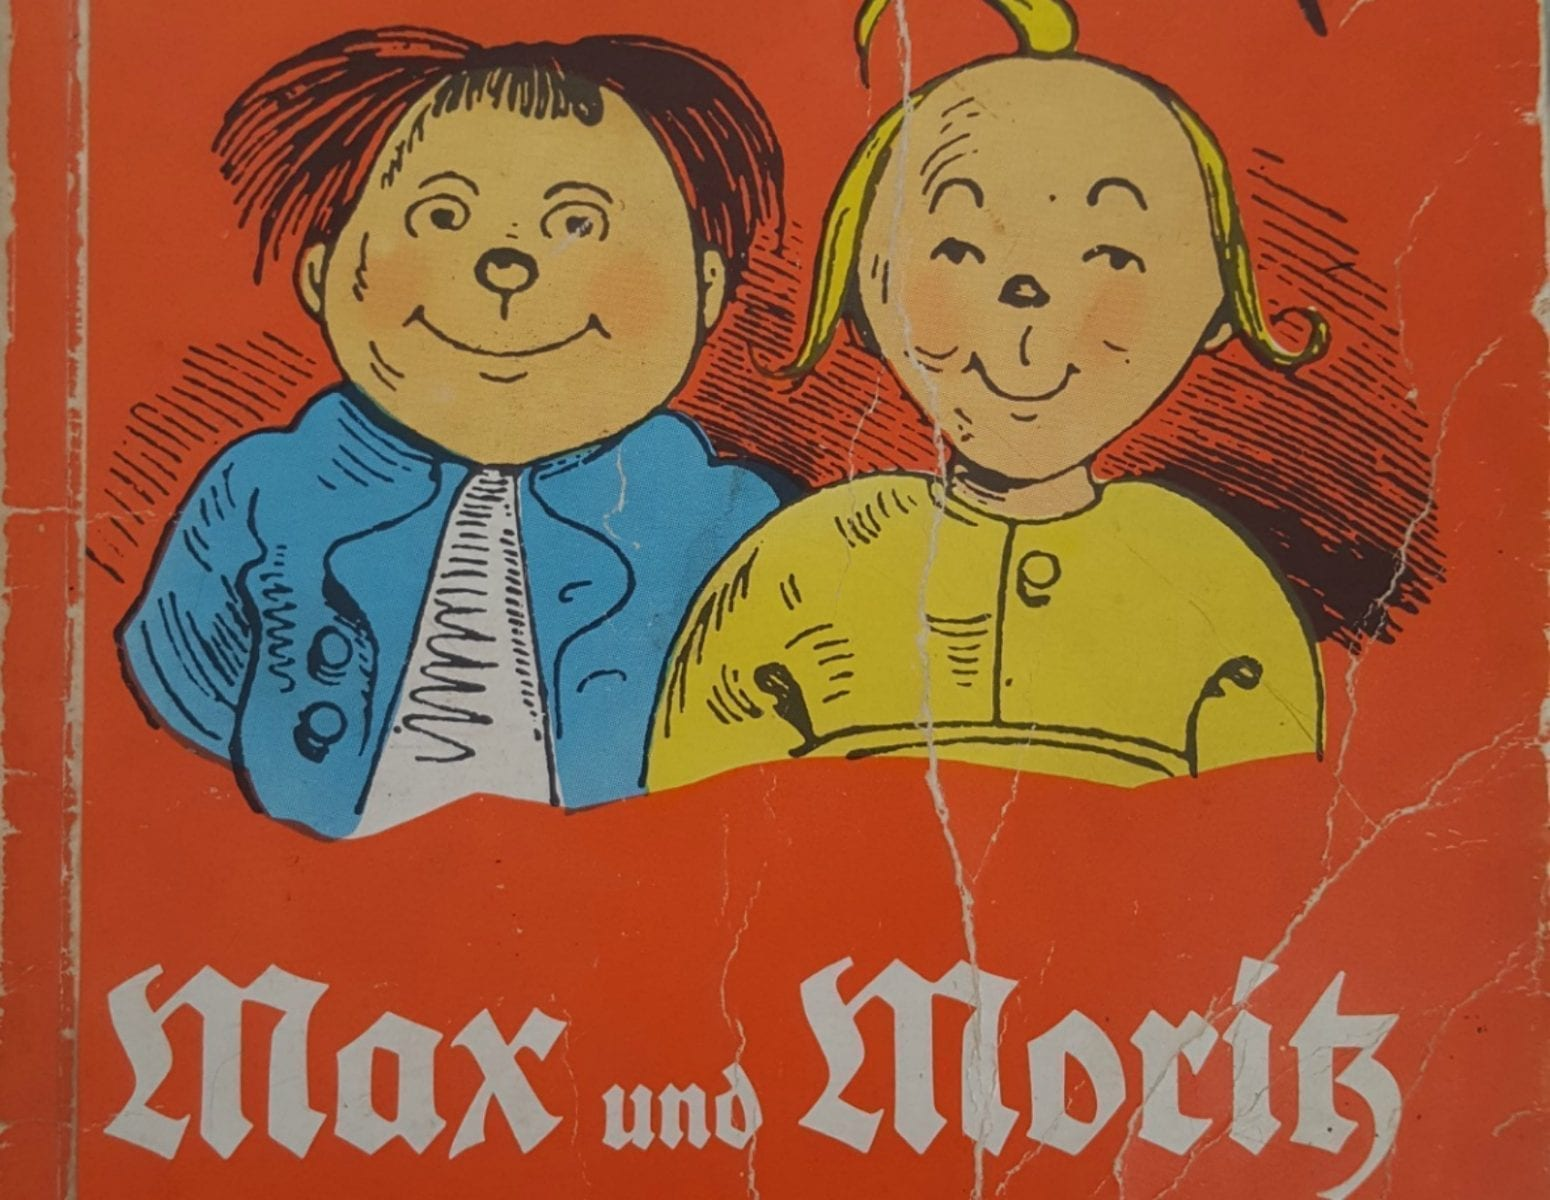 Who are Max and Moritz? Behind Wilhelm Busch's Bad Boy Stories